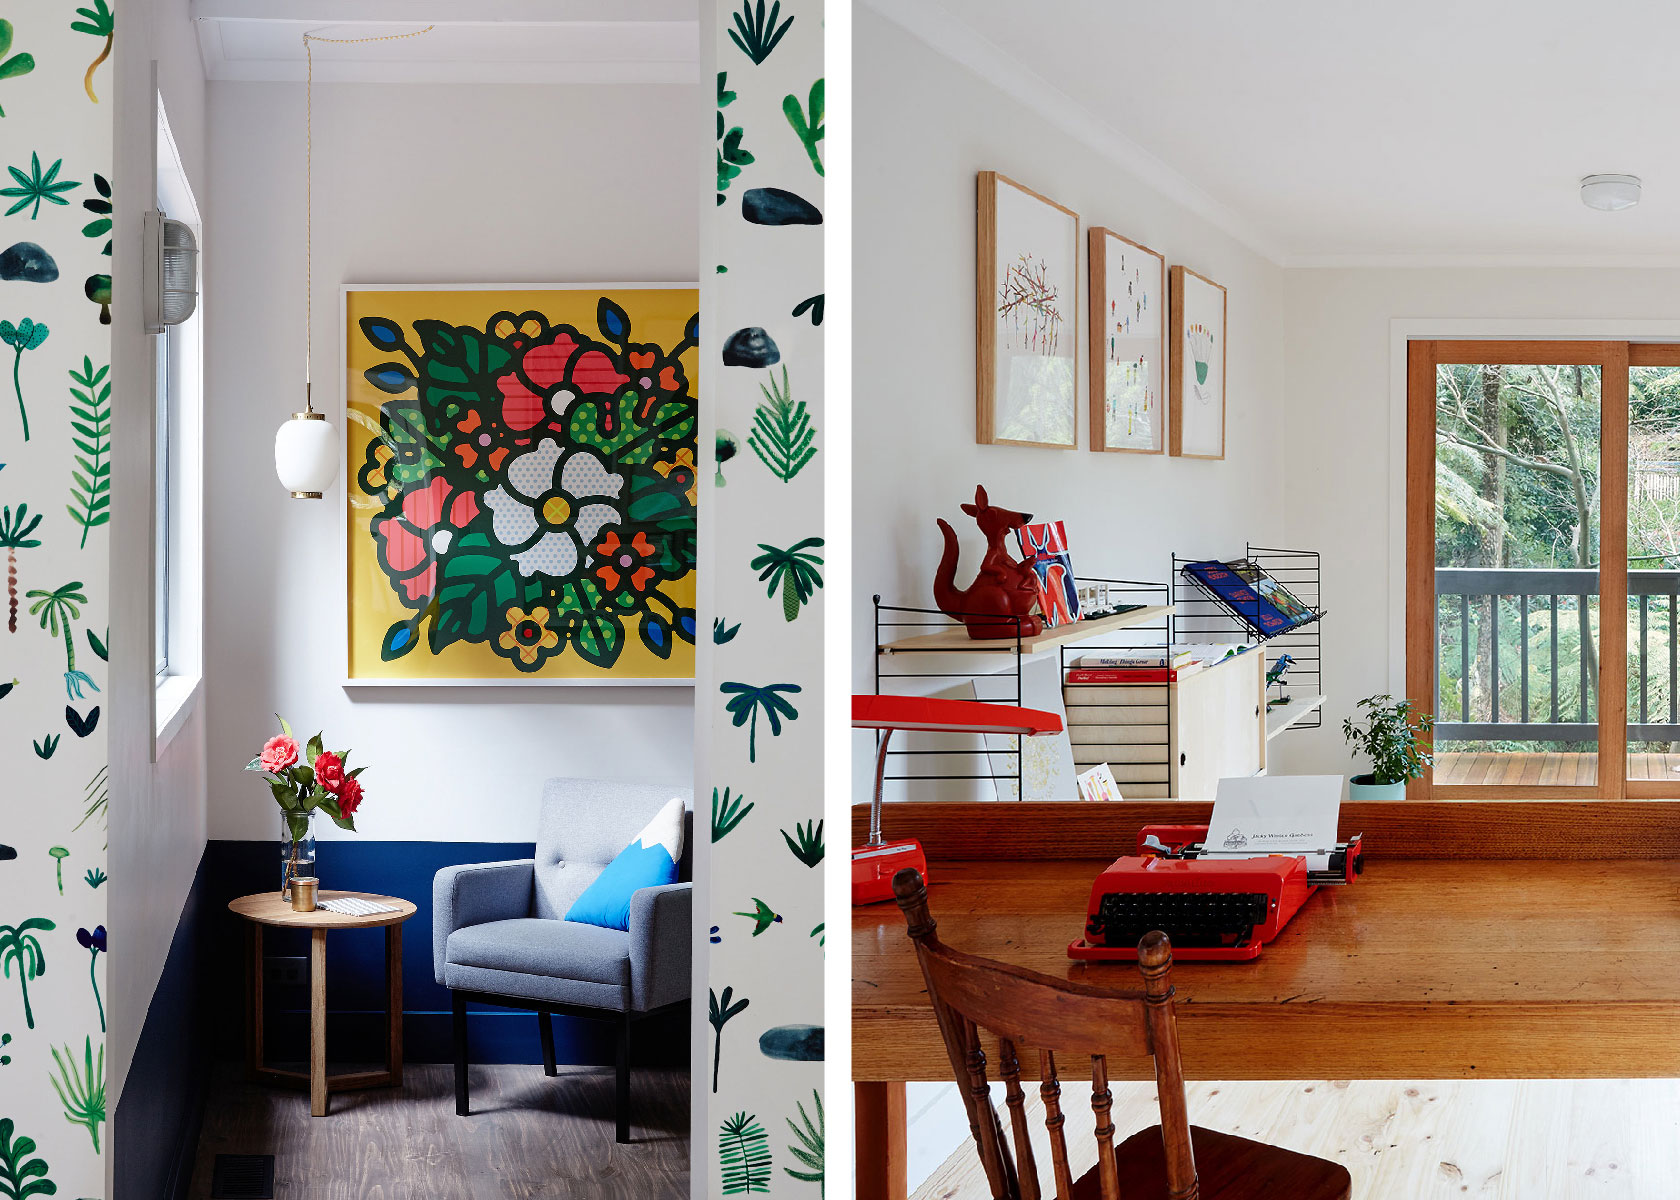 The Jacky Winter Gardens house is full of designs from creators all over the world.